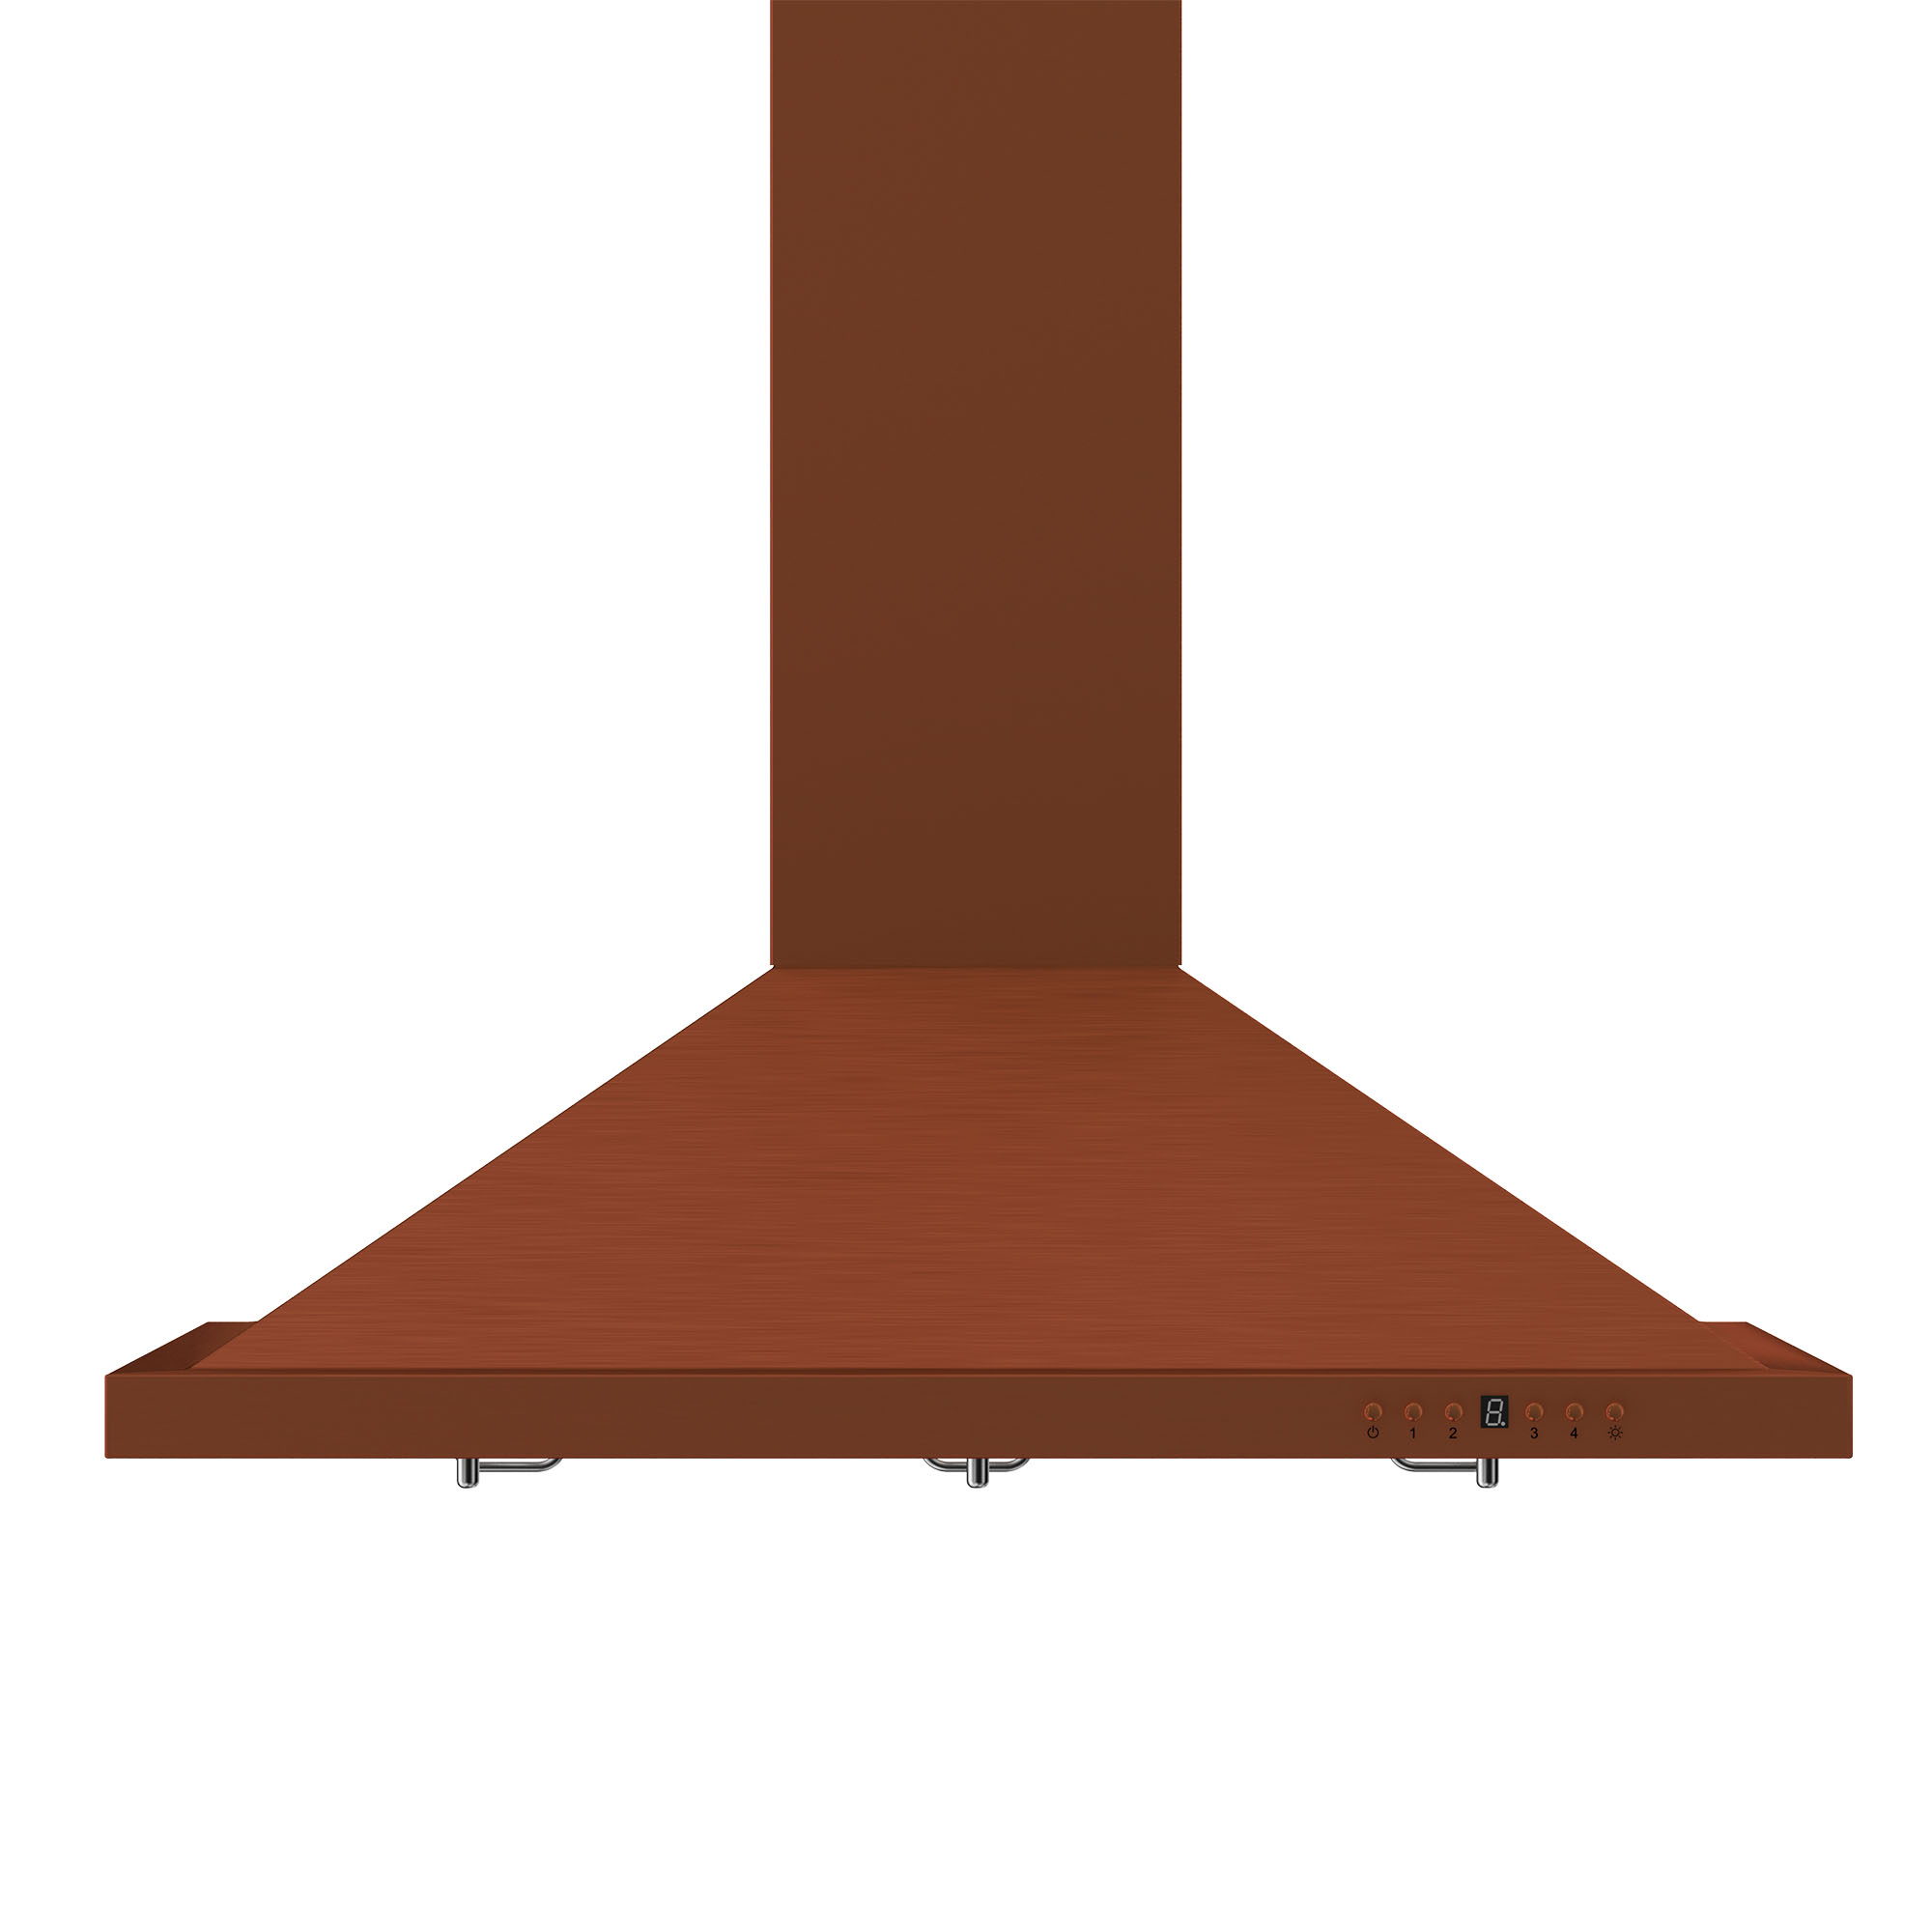 zline-copper-wall-mounted-range-hood-8KBC-front.jpg